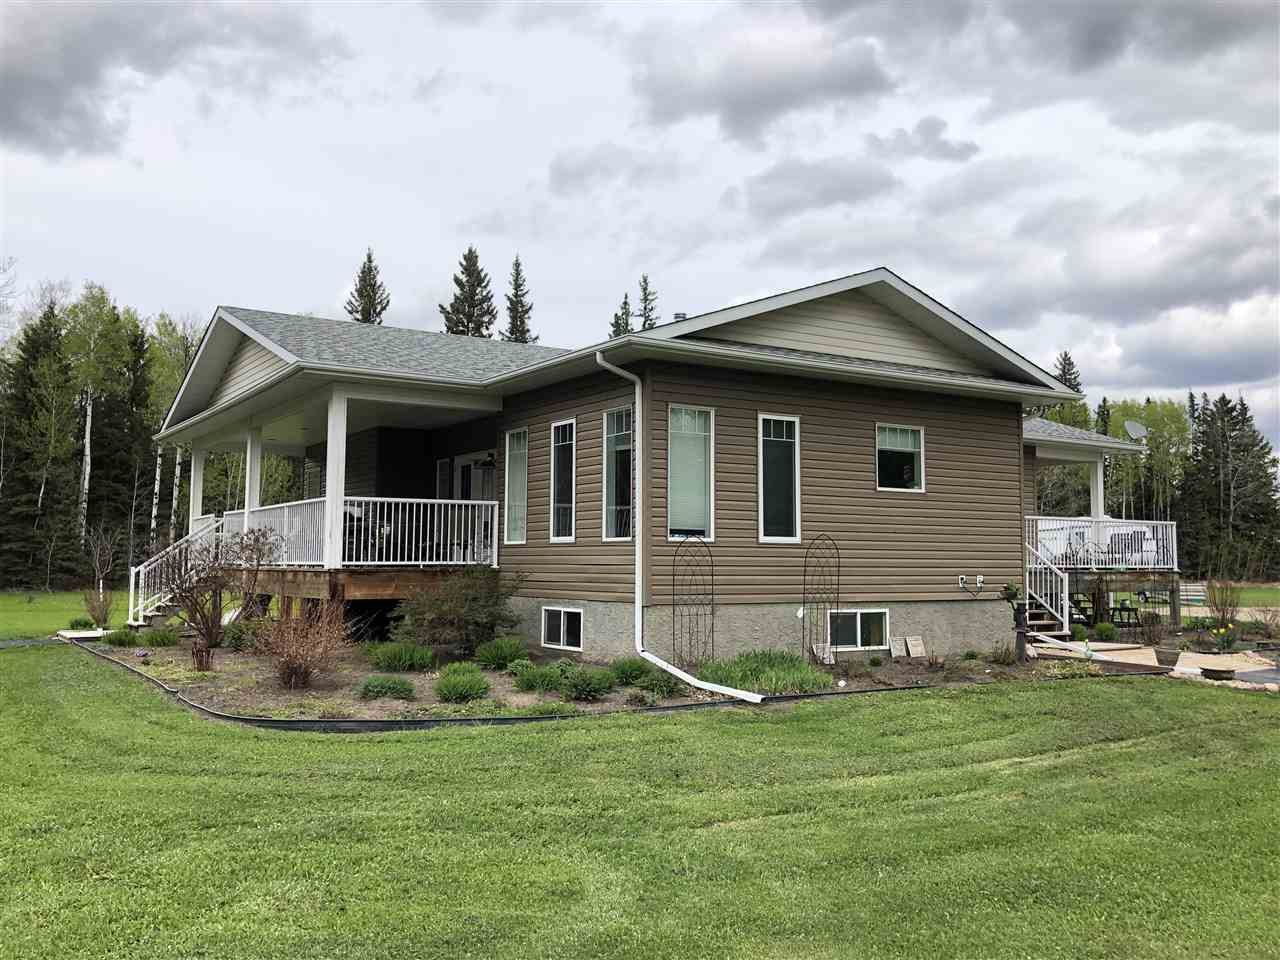 Main Photo: 621041 RR 225: Rural Athabasca County House for sale : MLS®# E4200641